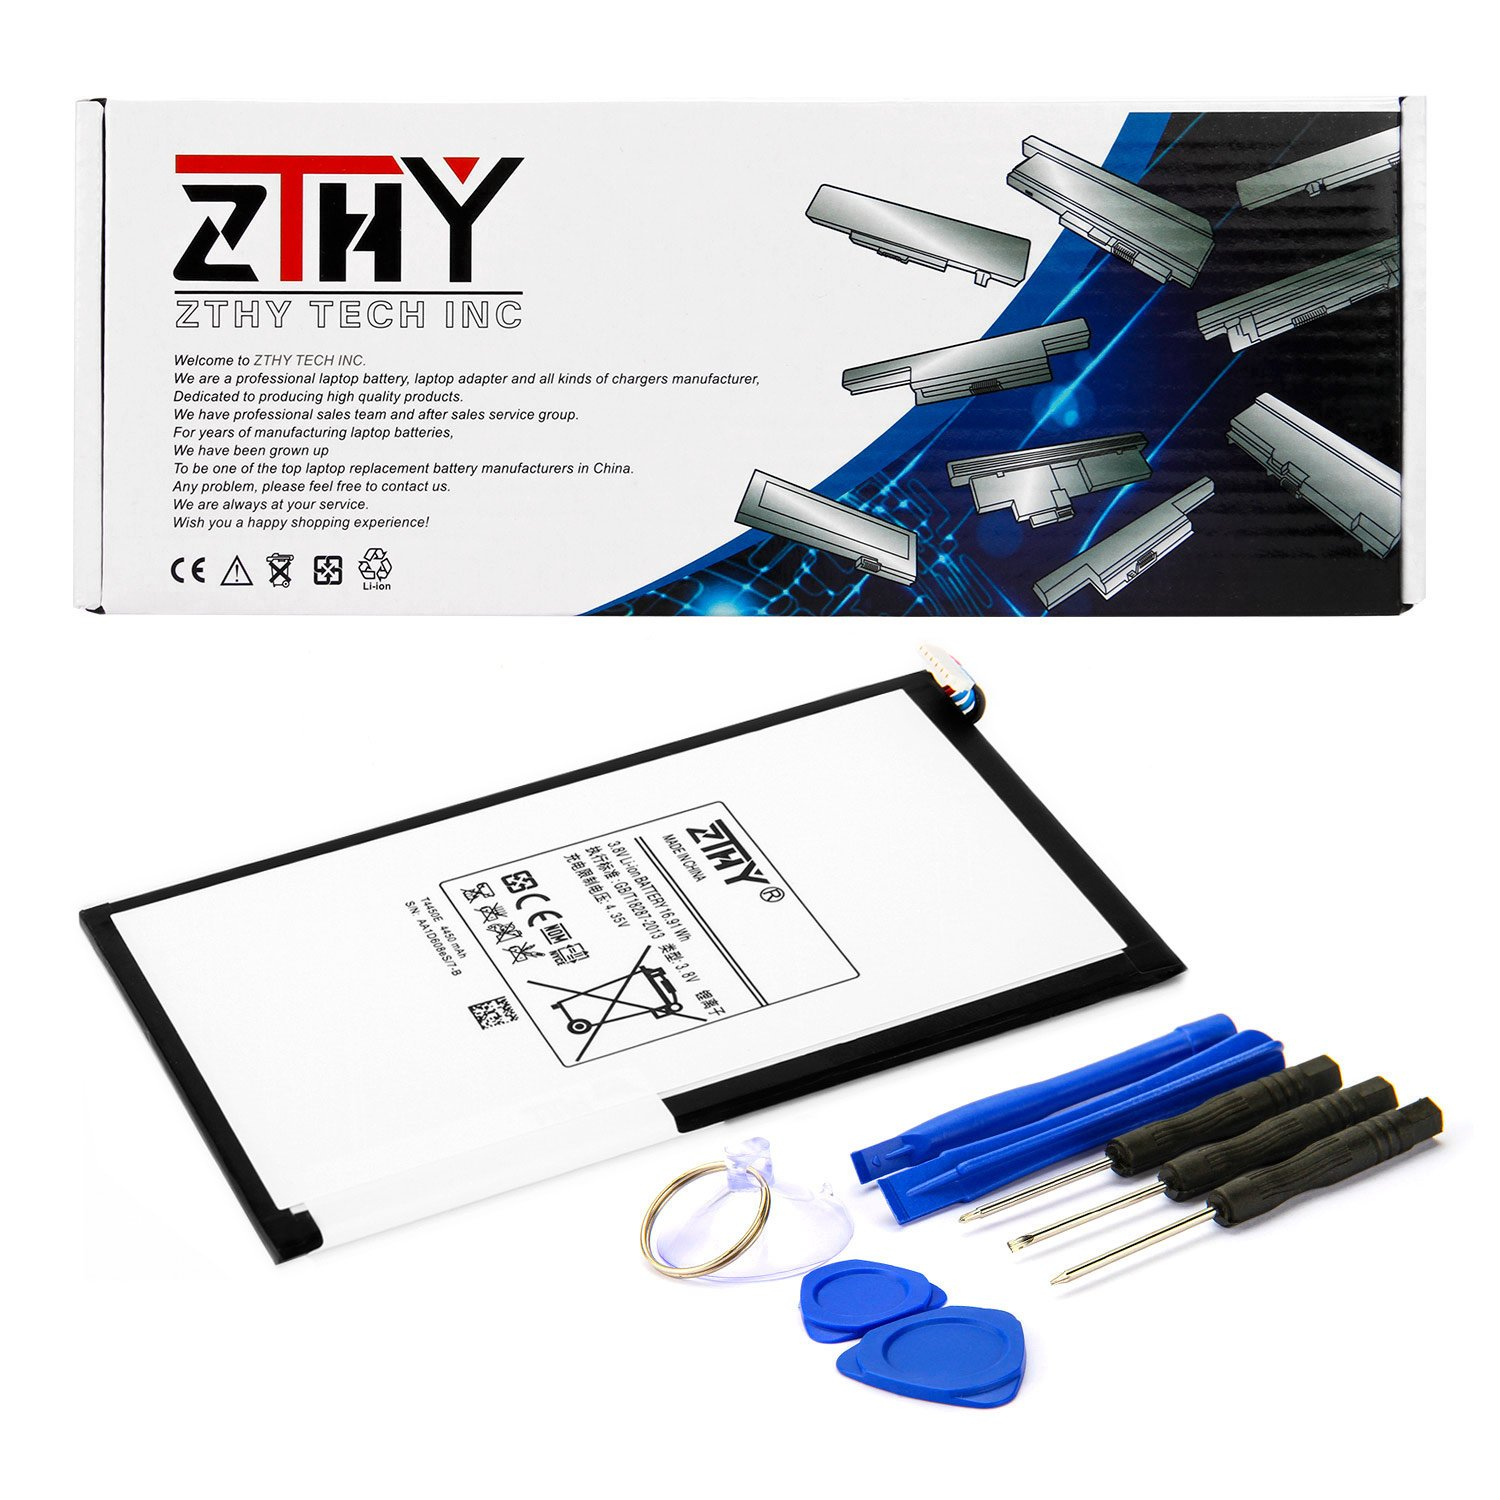 ZTHY Compatible T4450E Tablet Battery Replacement for Samsung Galaxy Tab 3 8.0 T310 T311 SM-T310 SM-T311 SM-T315 Series T4450C T4450U 3.8V 4450mAh with Tools by ZTHY